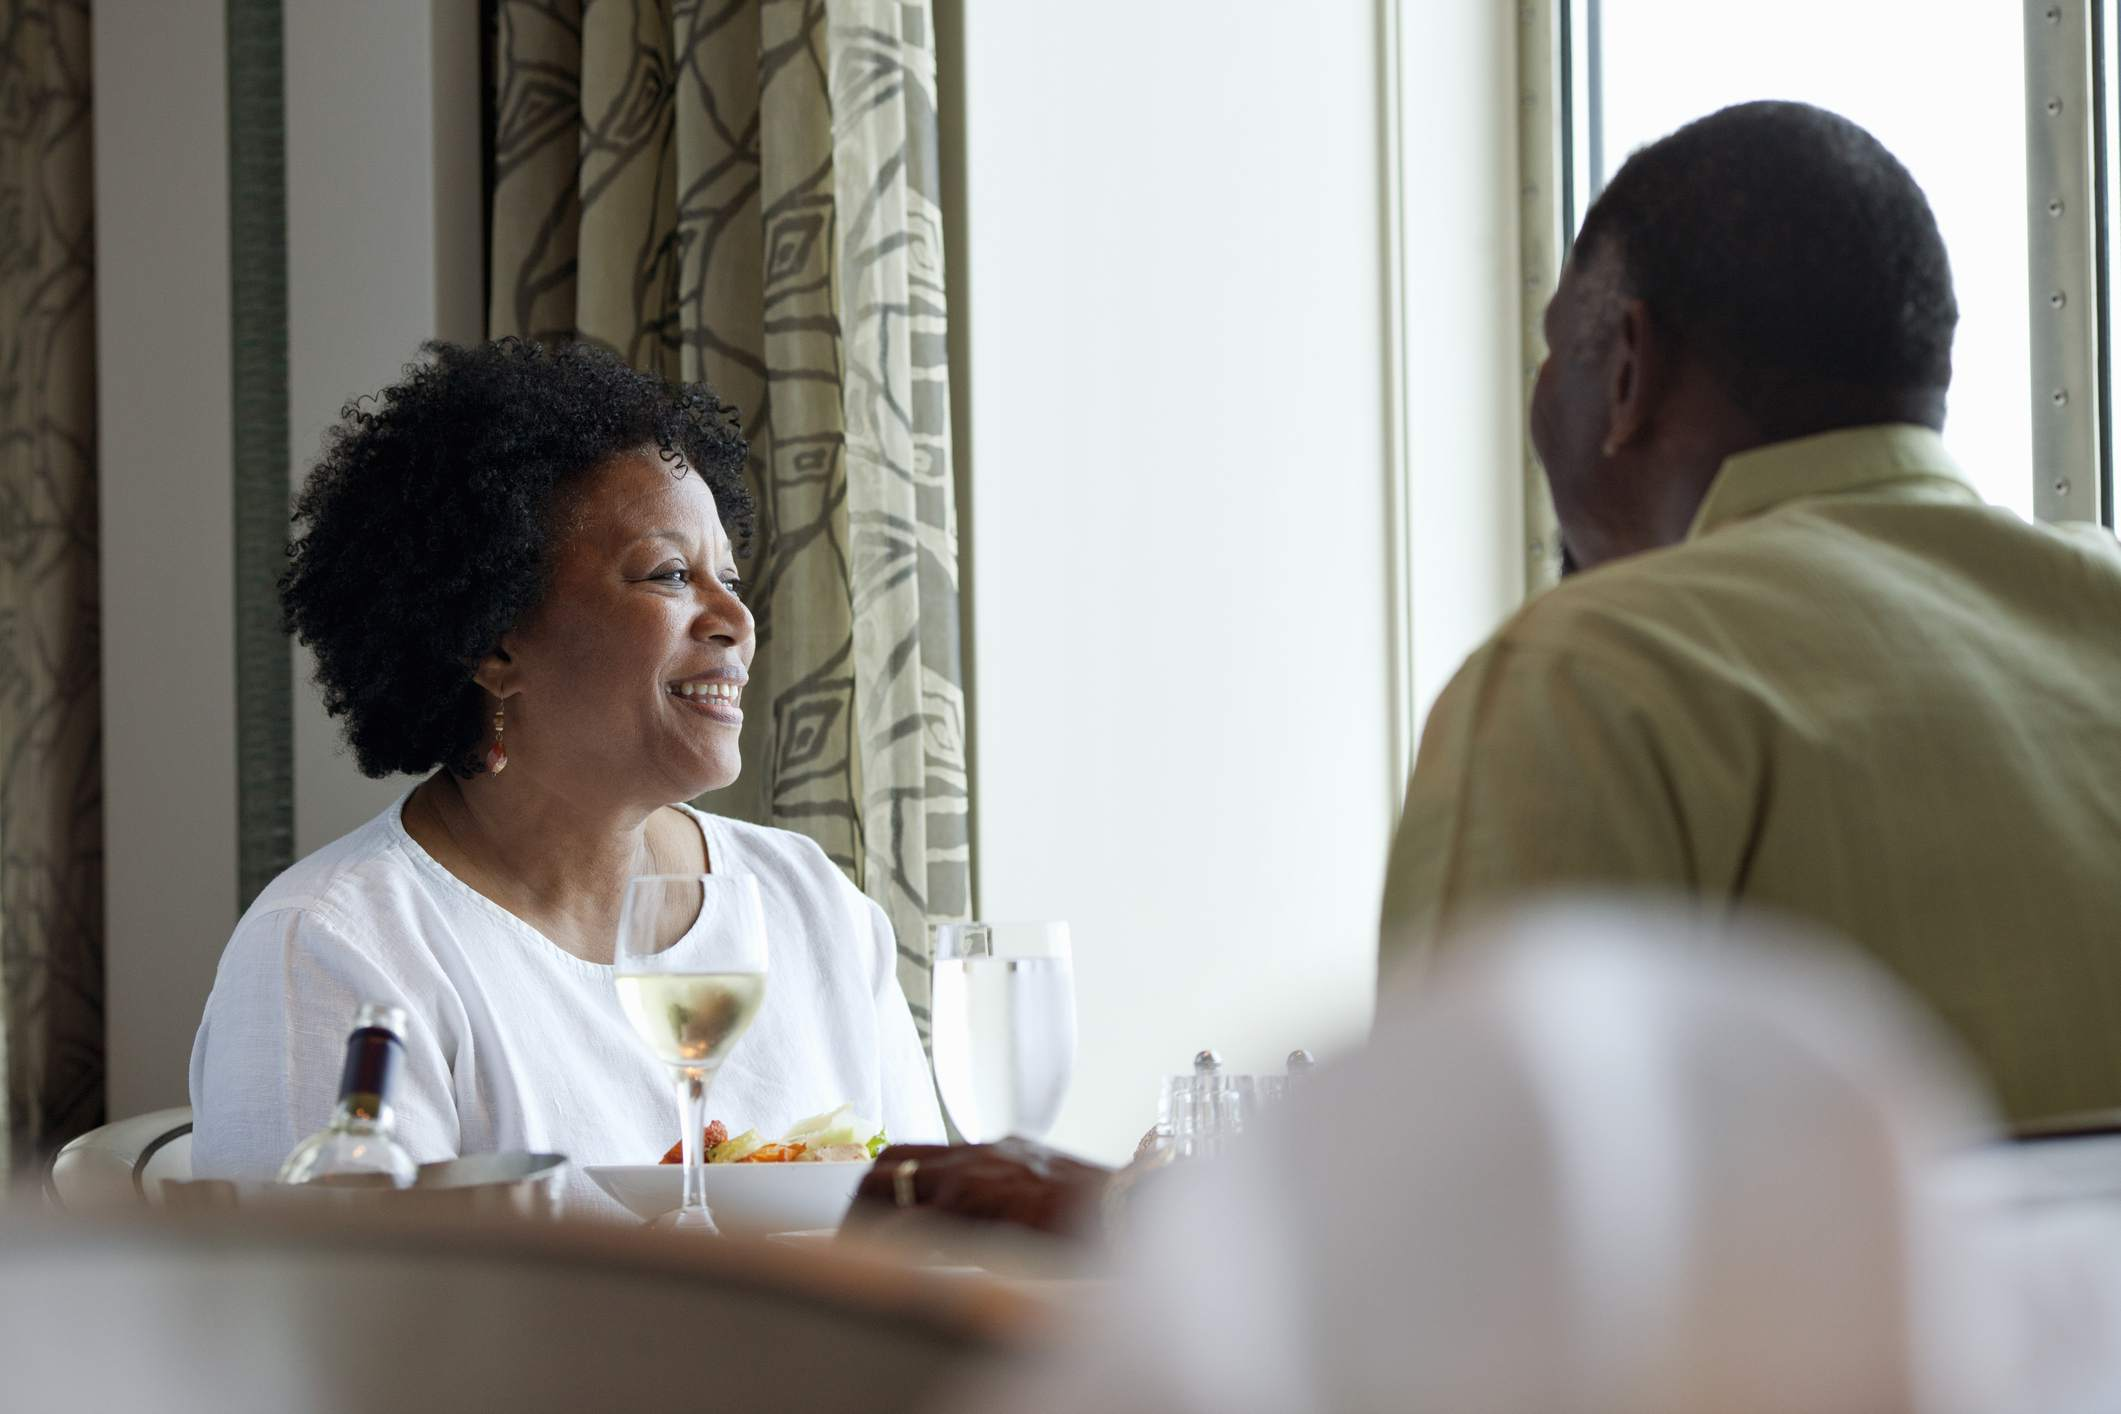 Mature African American woman smiling and looking out the window of cruise ship while eating dinner with her husband.